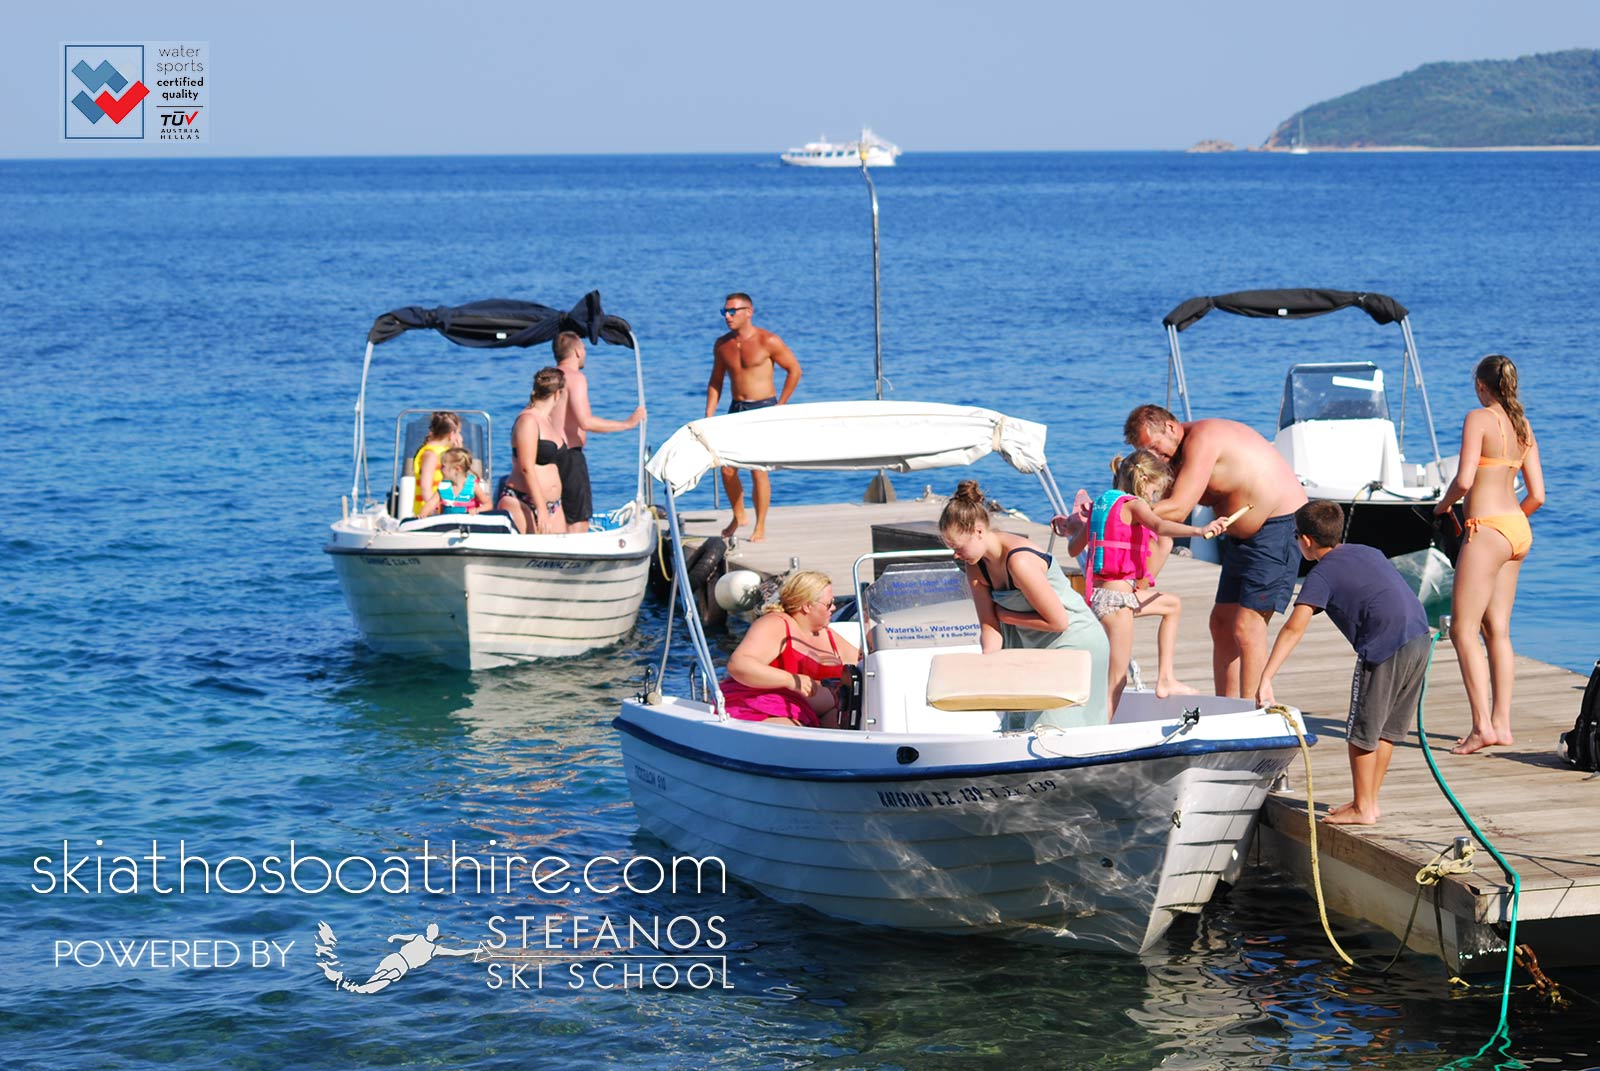 boat rental services in skiathos